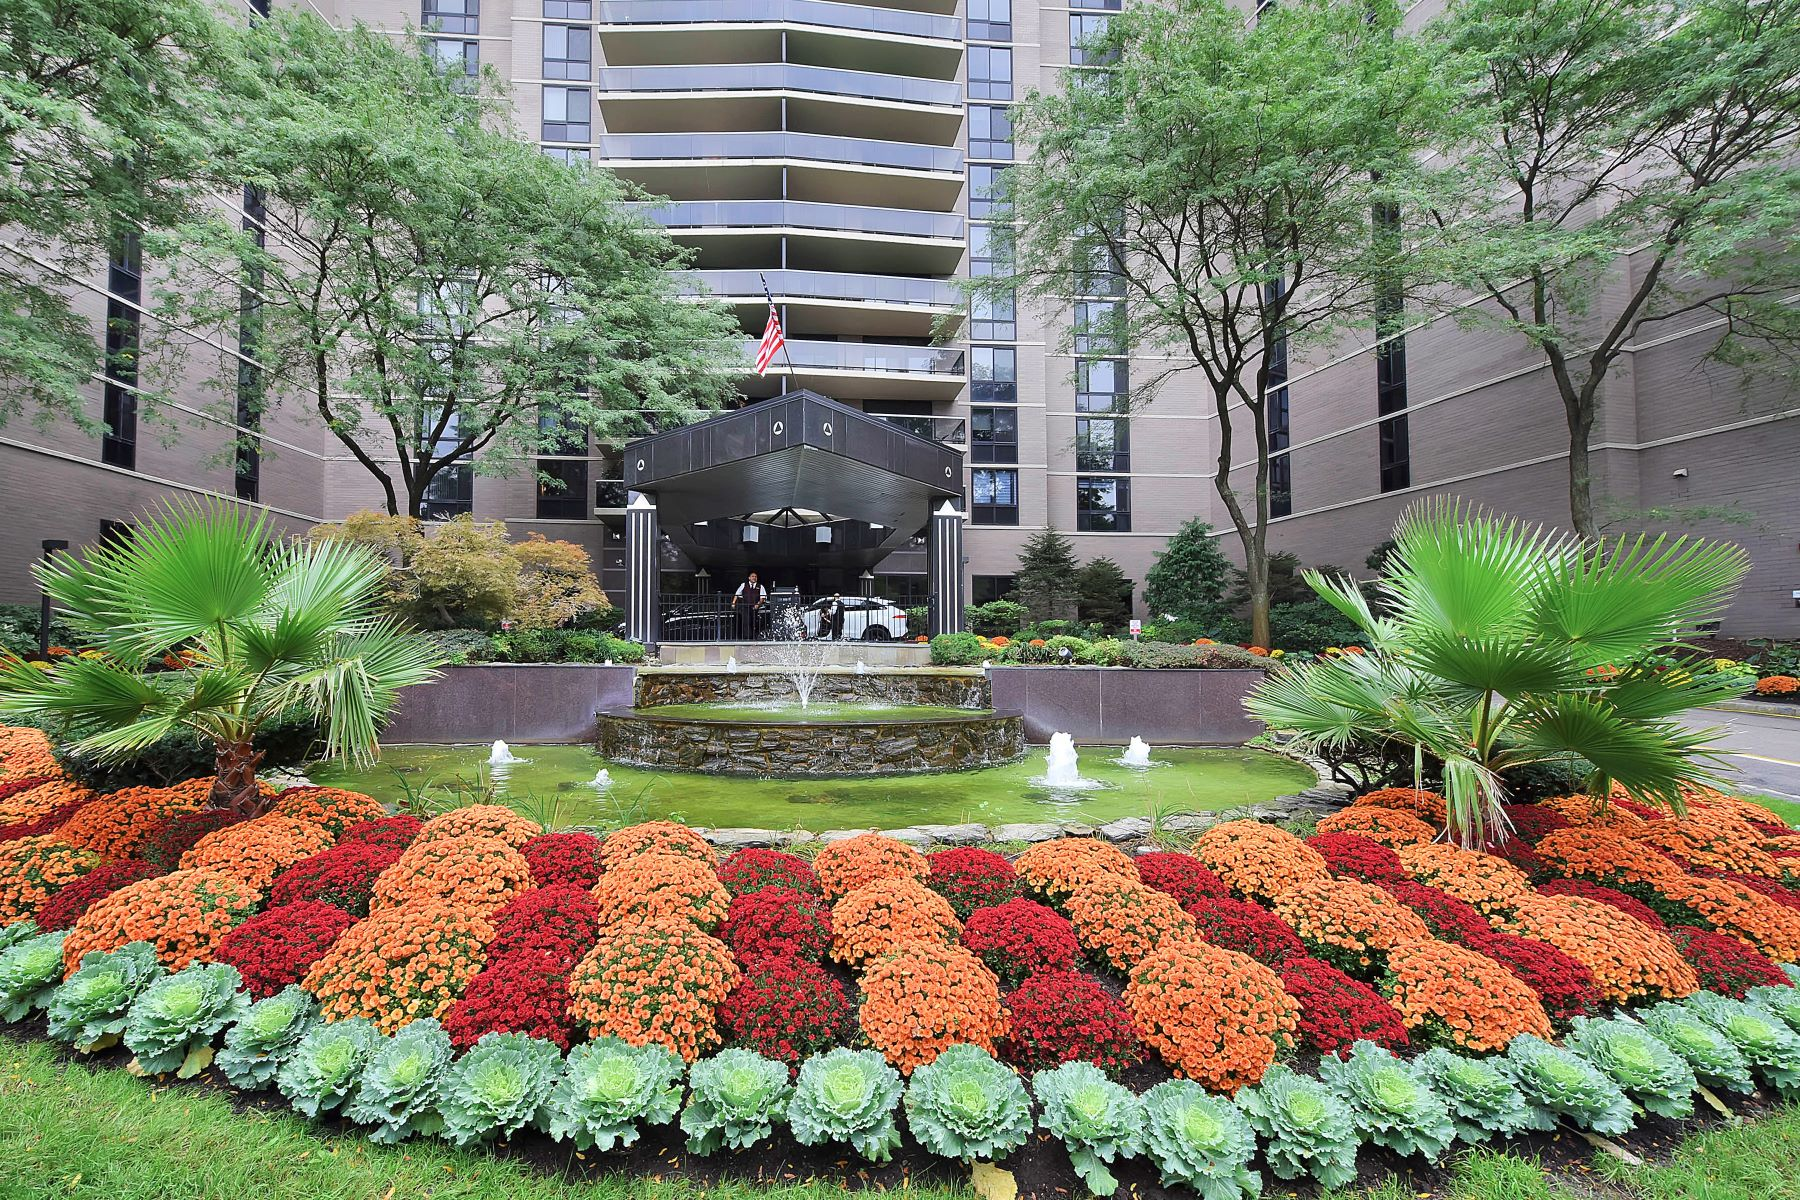 Condominium for Sale at Renovated Luxury Apartment 1512 Palisade Ave 5 M, Fort Lee, New Jersey 07024 United States